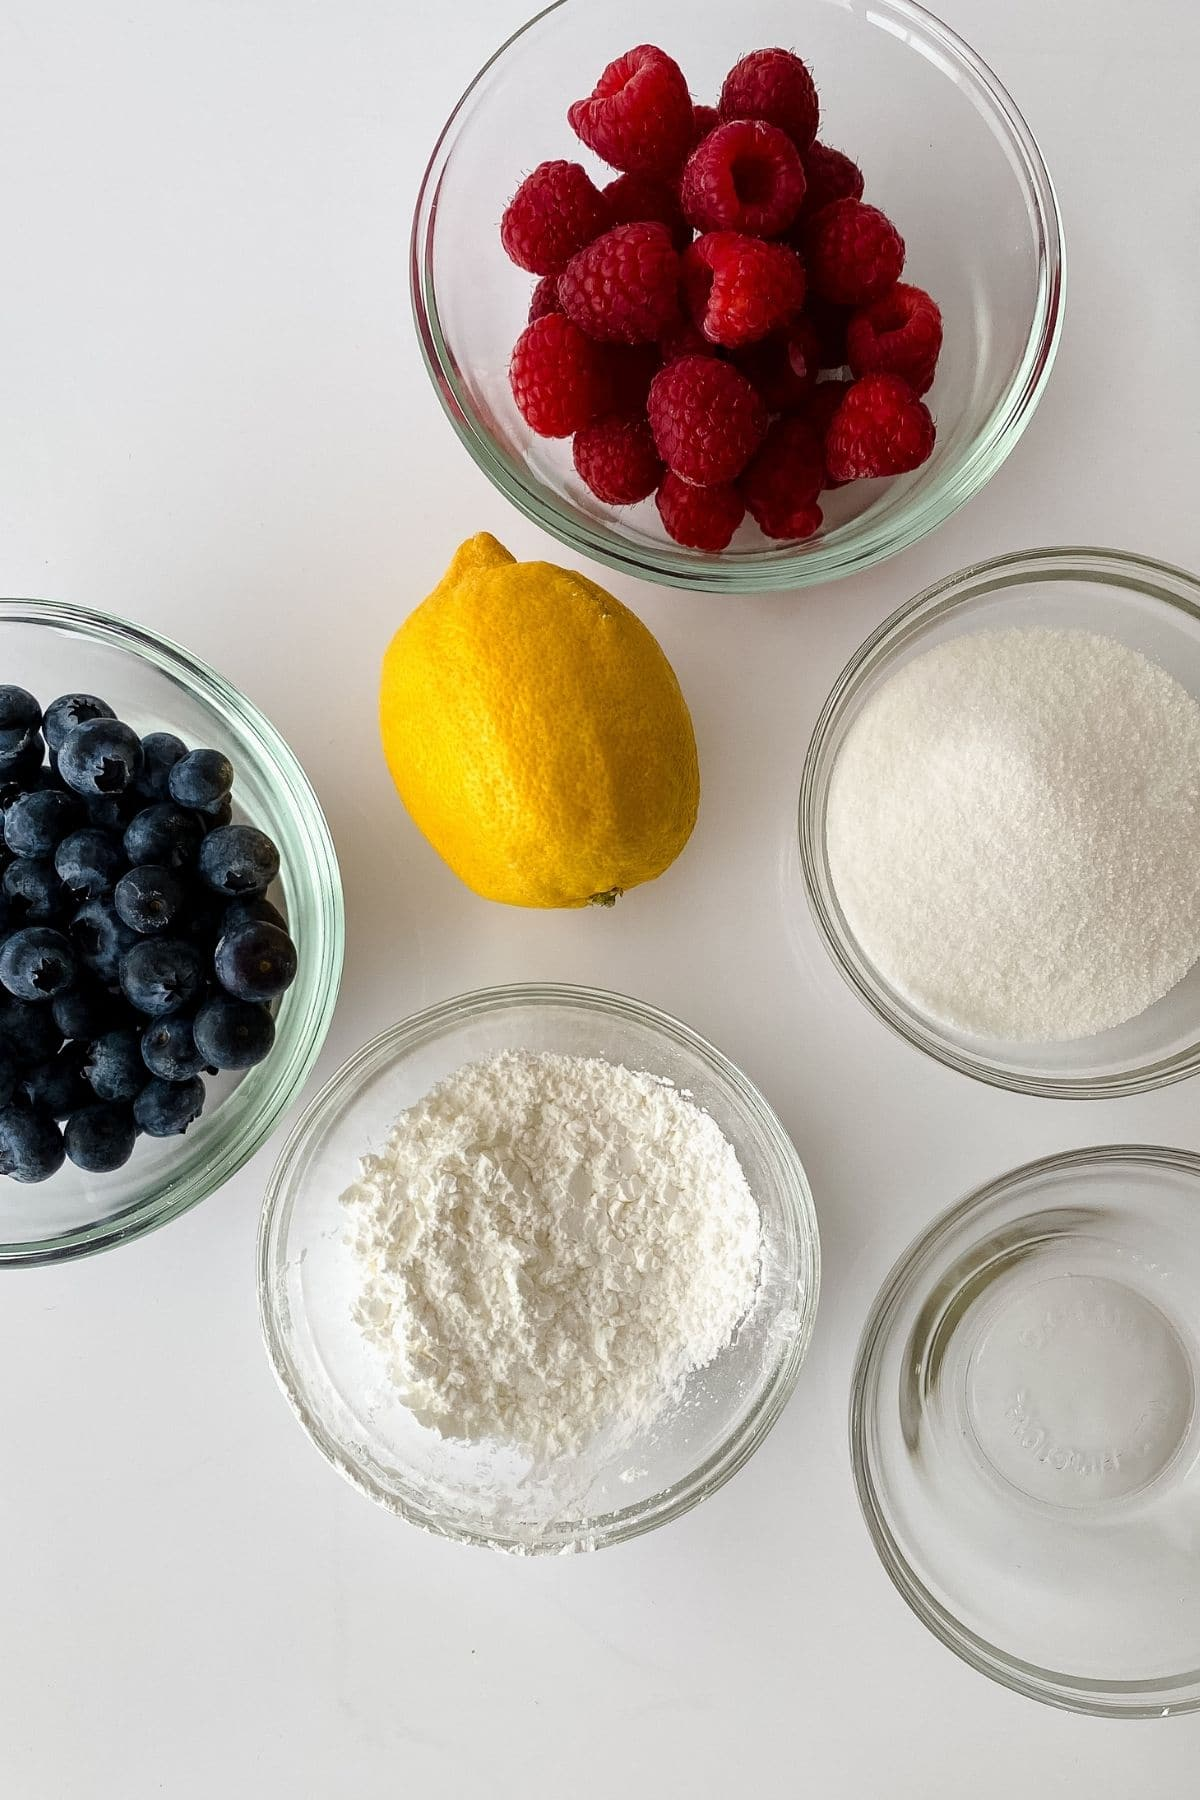 Ingredients for berry compote in glass bowls